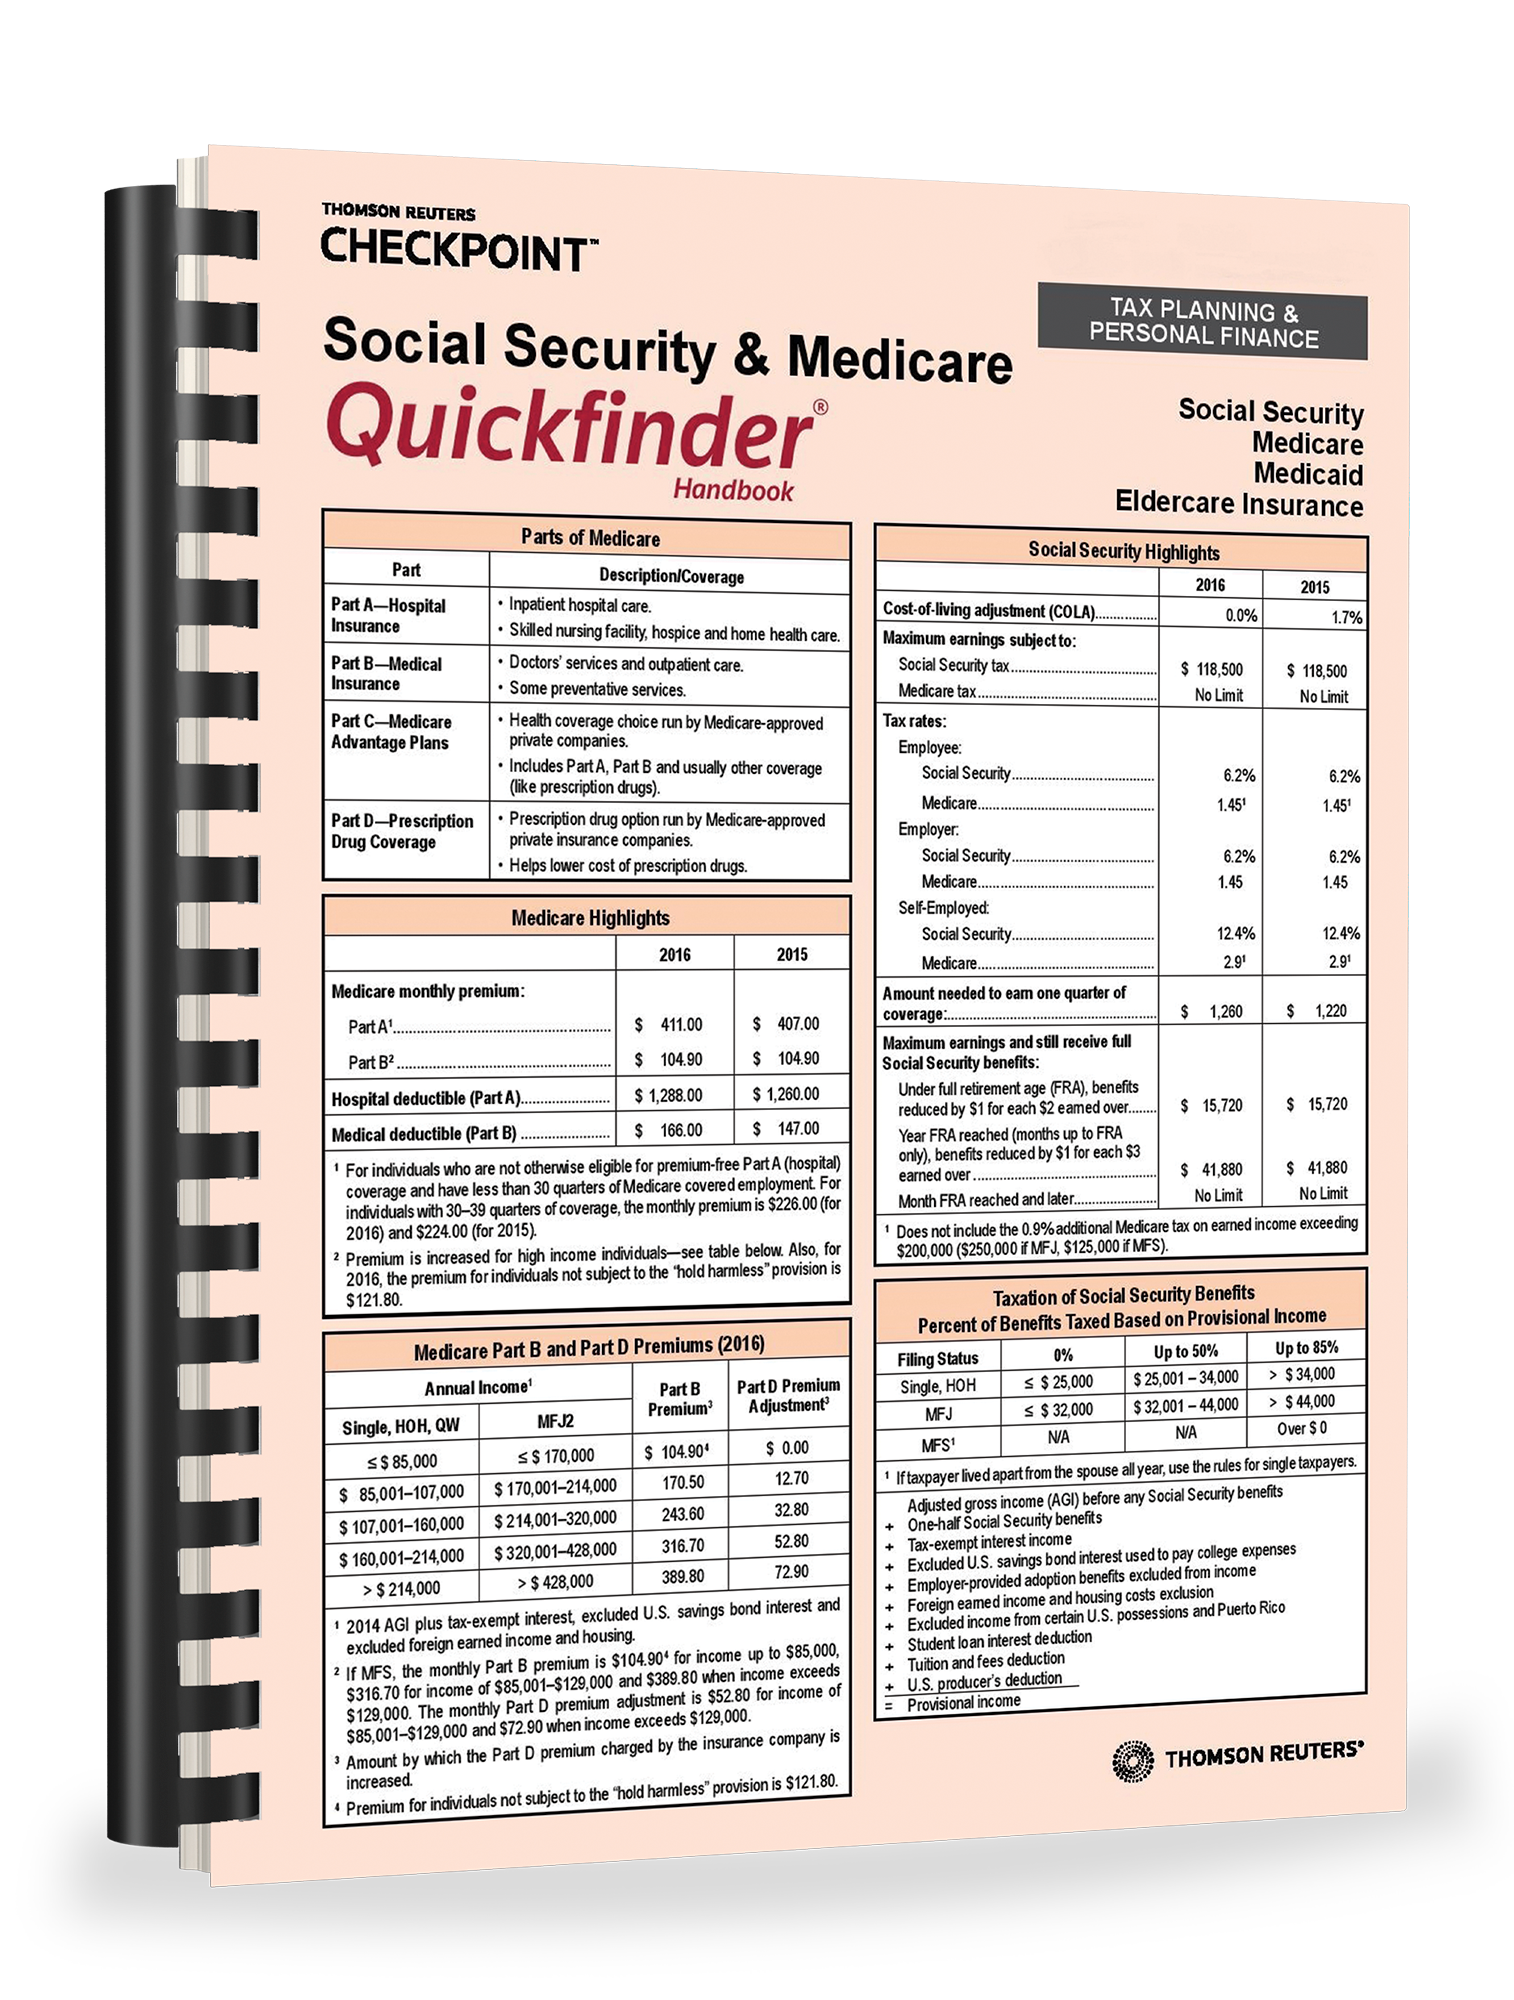 Social Security and Medicare Quickfinder Handbook (2018) - #3815